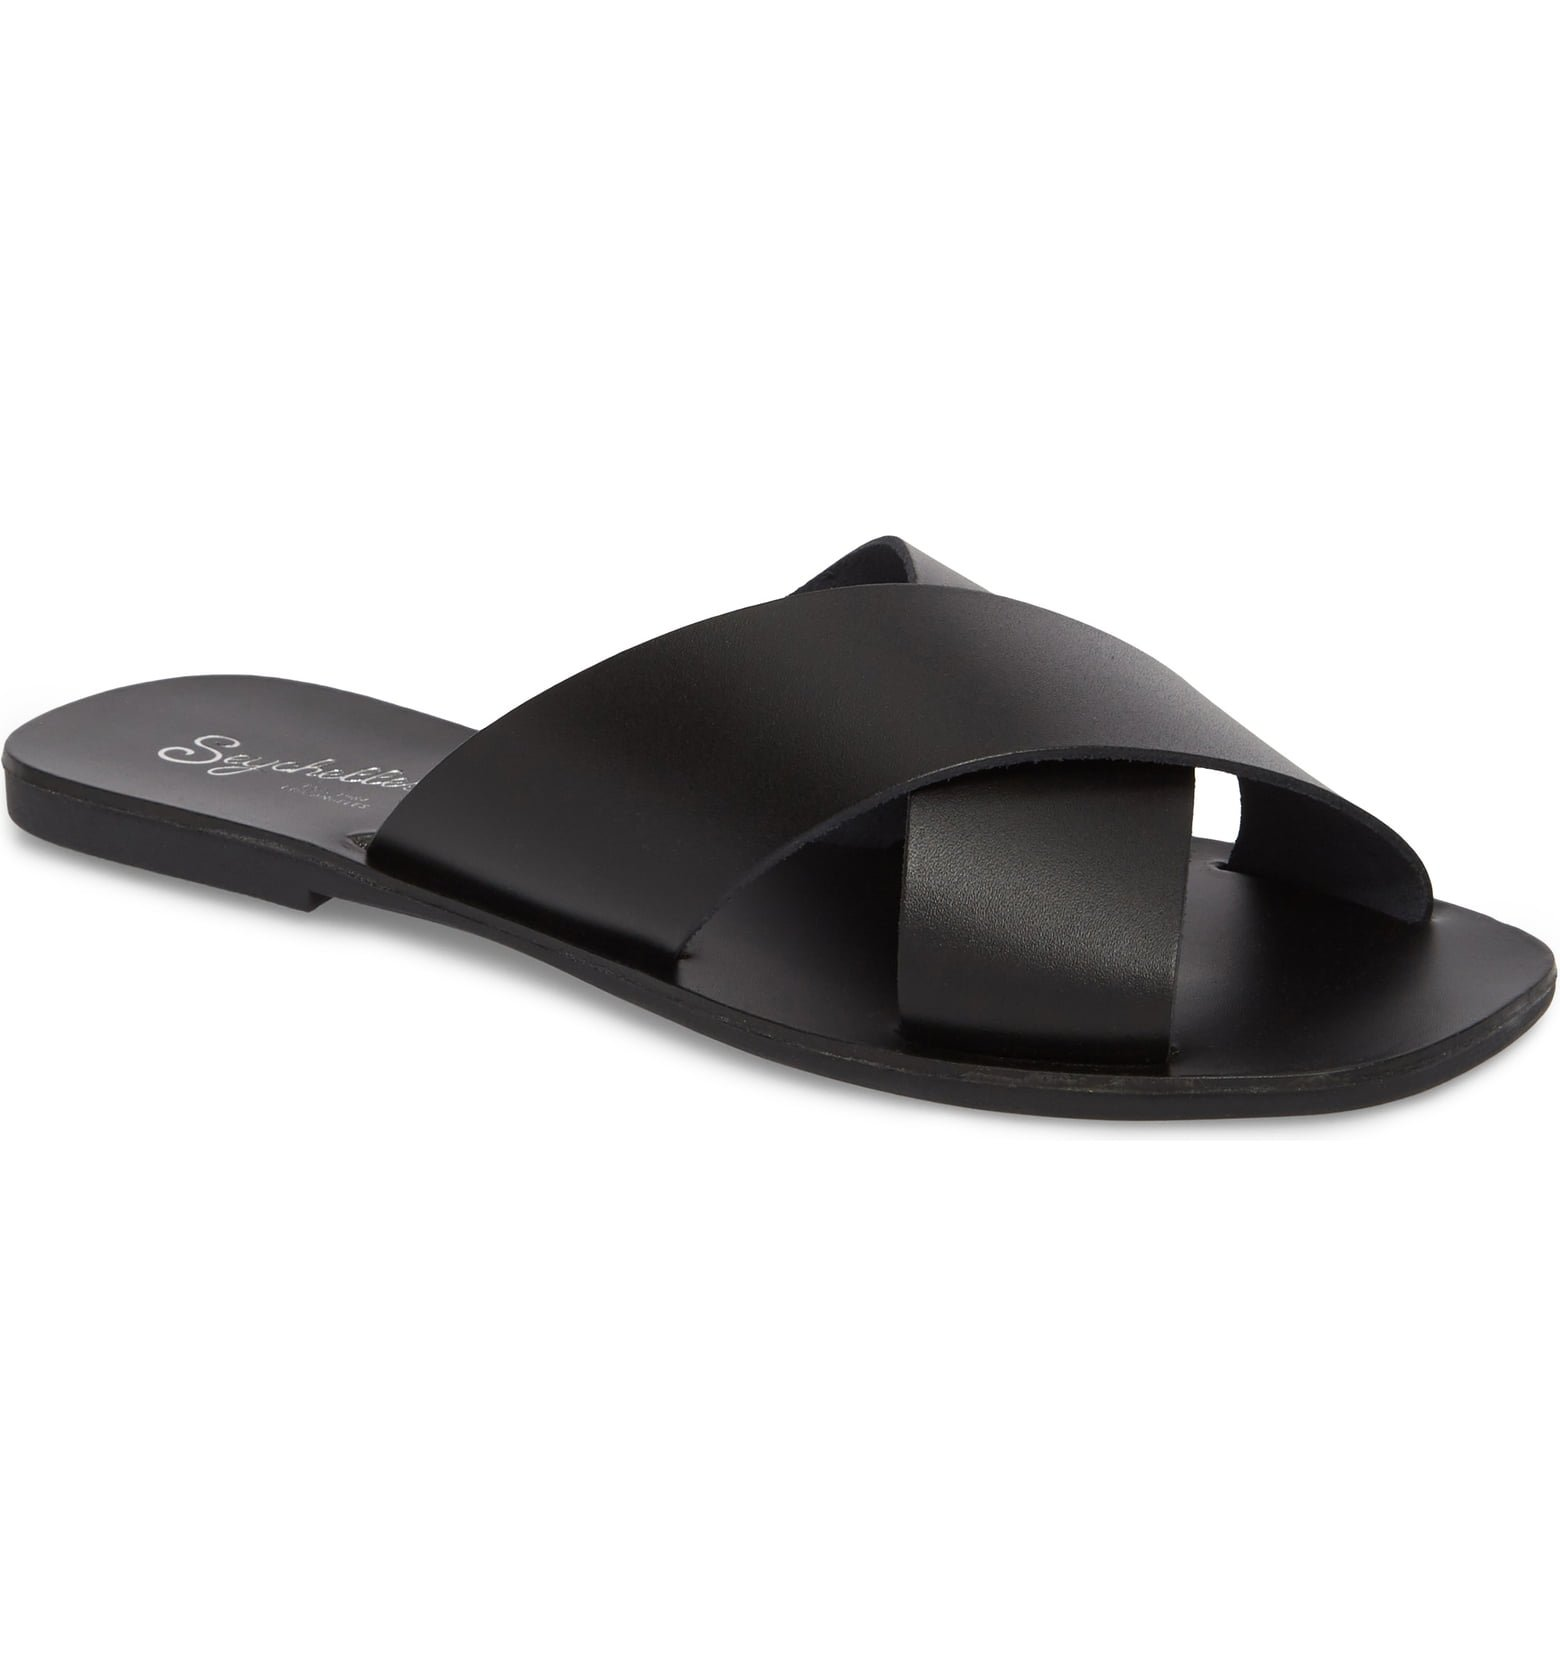 Total Relaxation Slide Sandal SEYCHELLES black